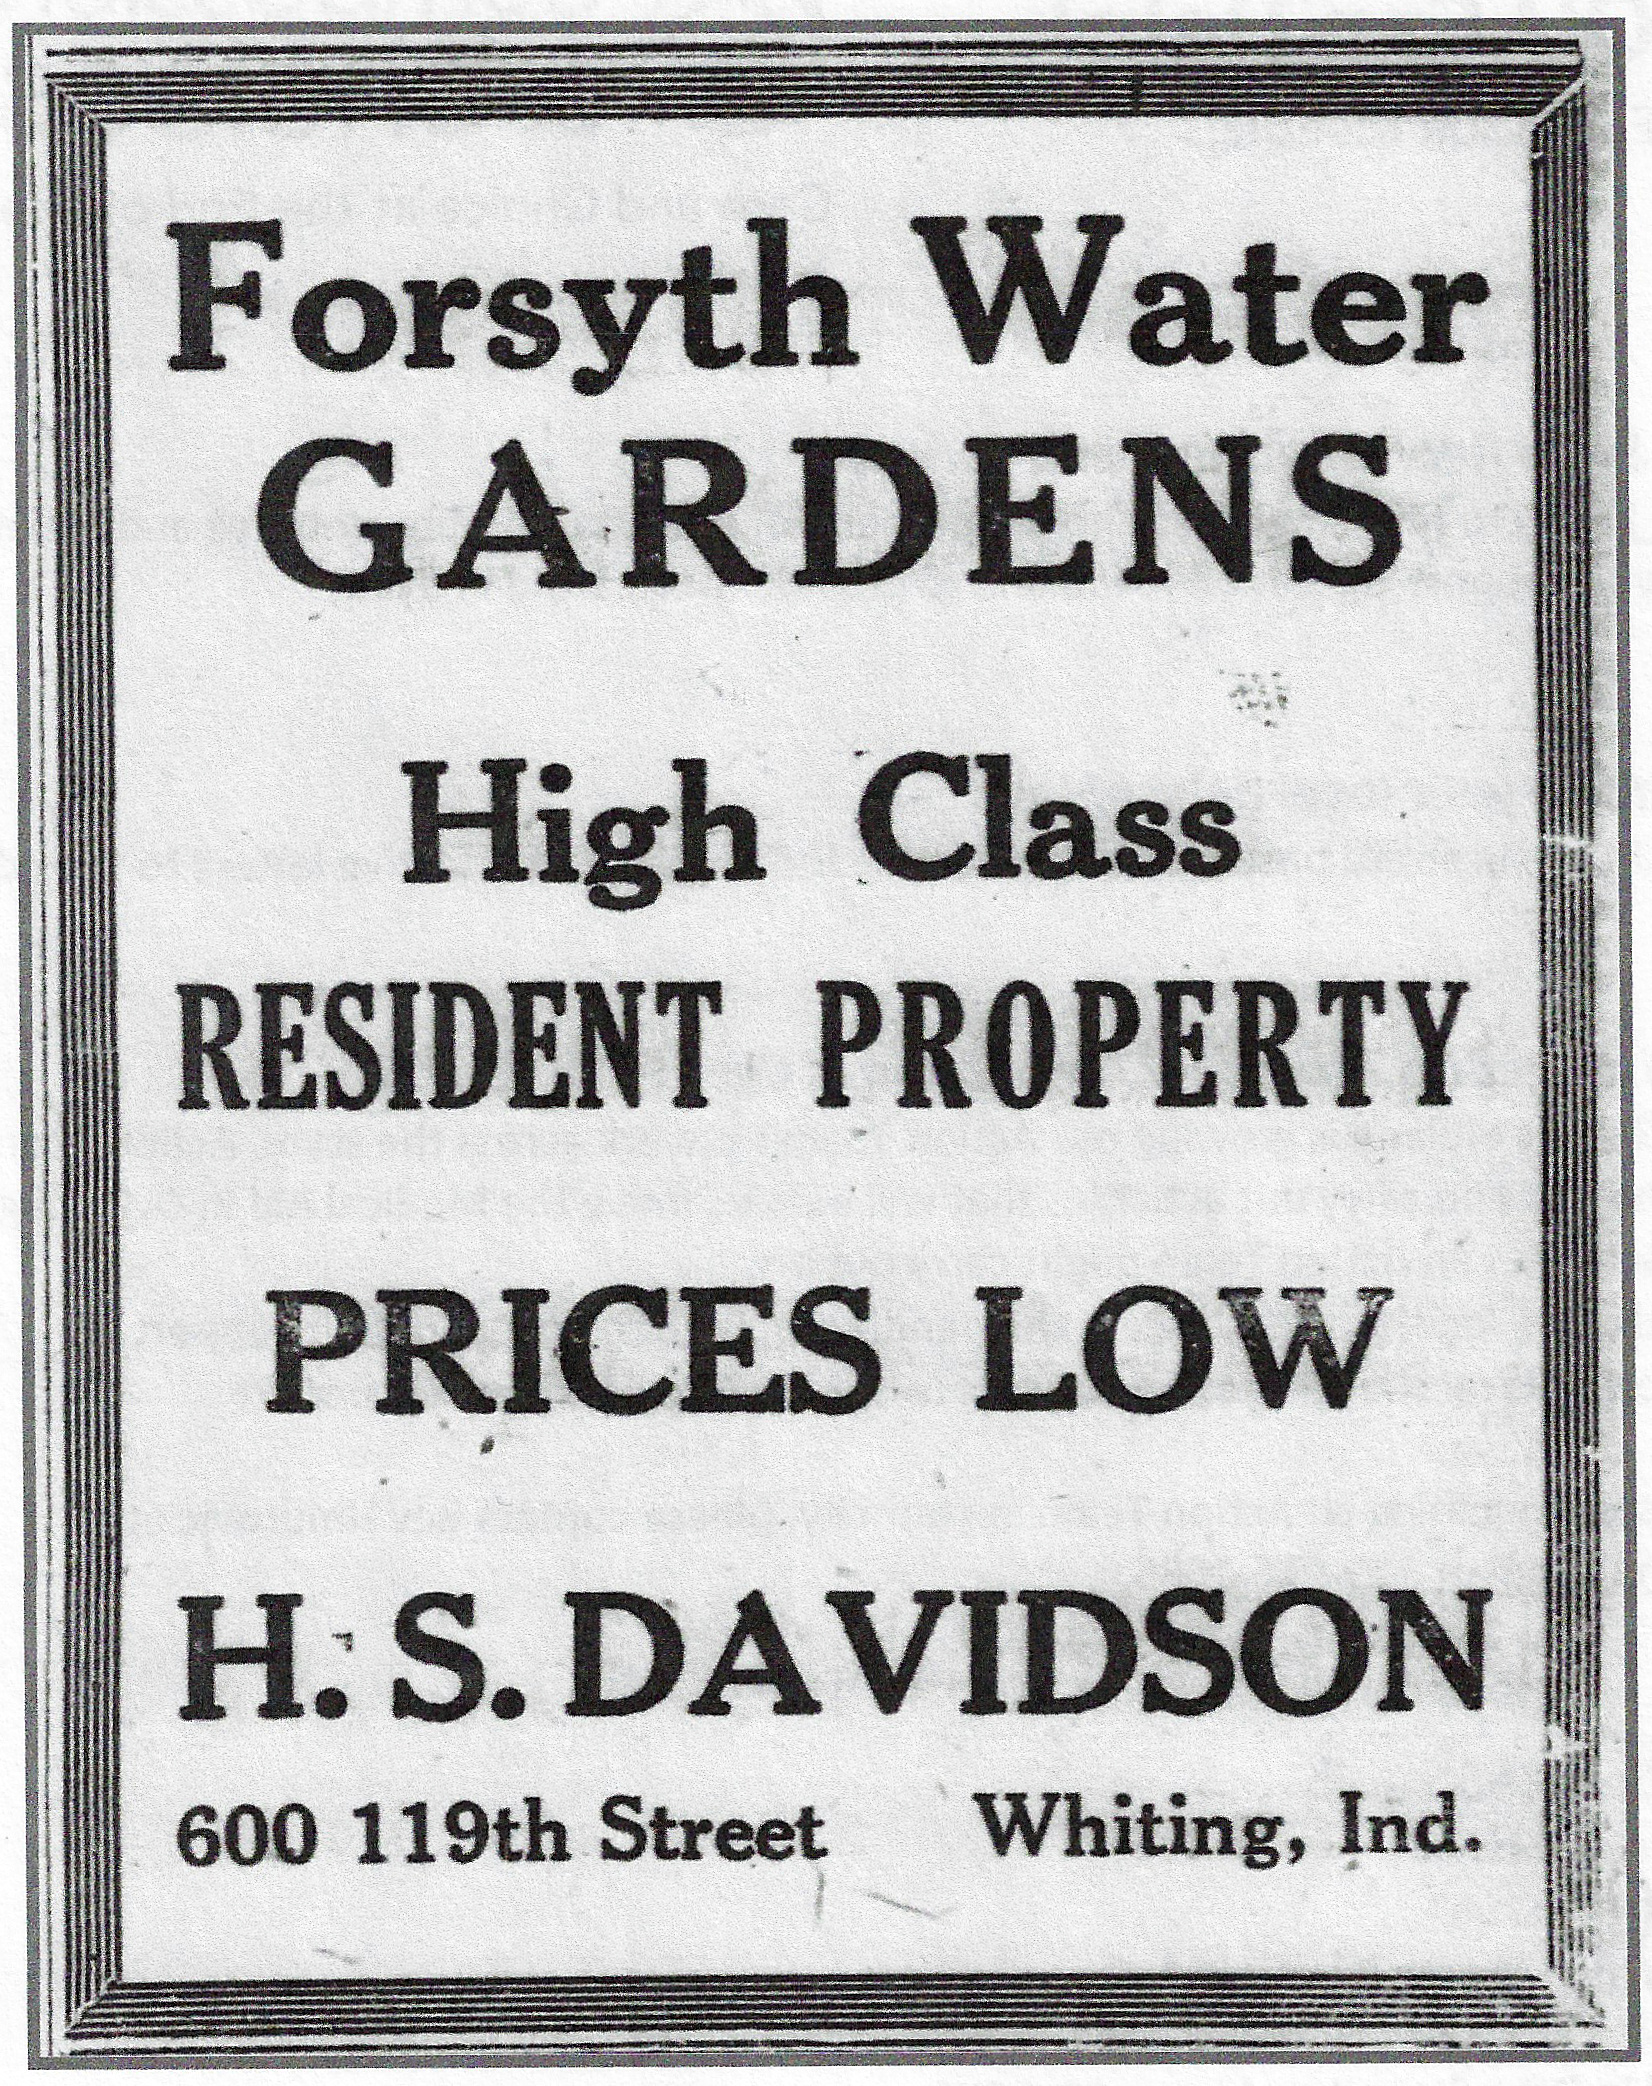 Henry S. Davidson's father was a newspaper editor in Monticello, Iowa, and when Henry came to Whiting one of his first ventures was to run a newspaper called  The Whiting News.  As a real estate agent he frequently used newspapers to promote his projects.